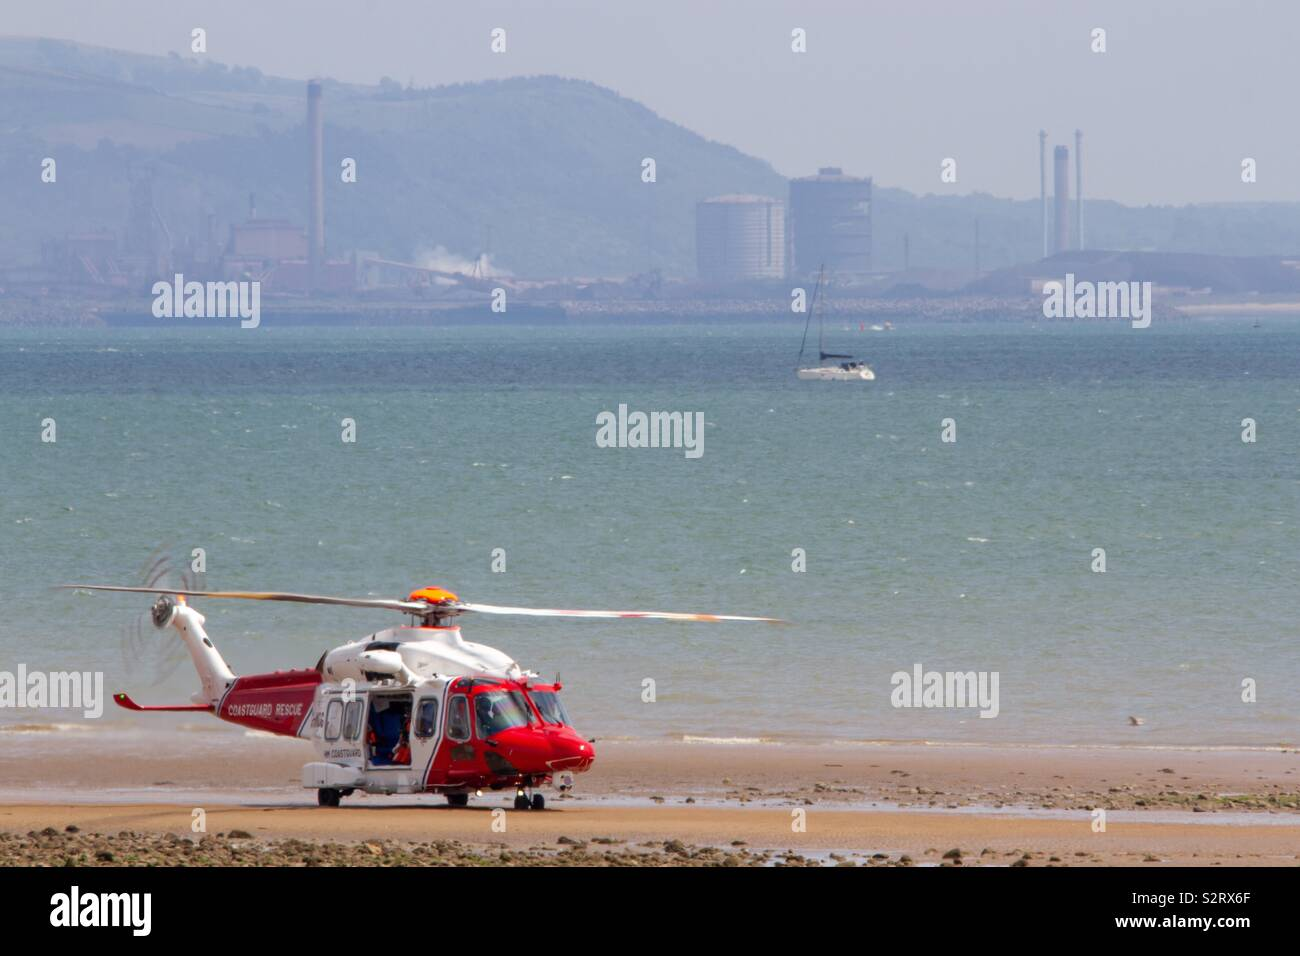 Coast guard landing on beach with an industrial backdrop - Stock Image